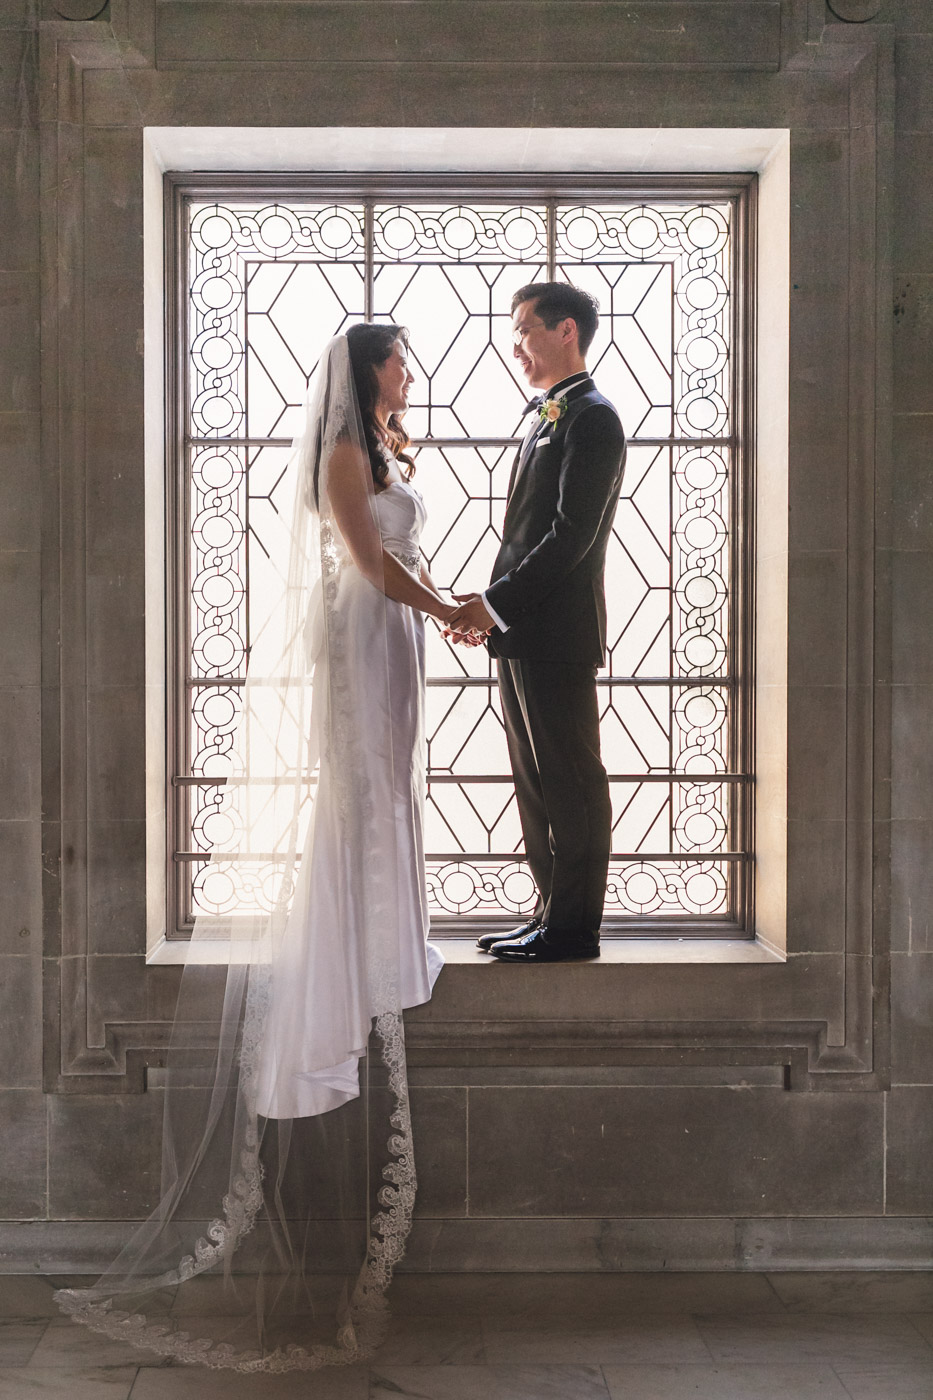 bride-and-groom-standing-in-window-san-francisco-city-hall